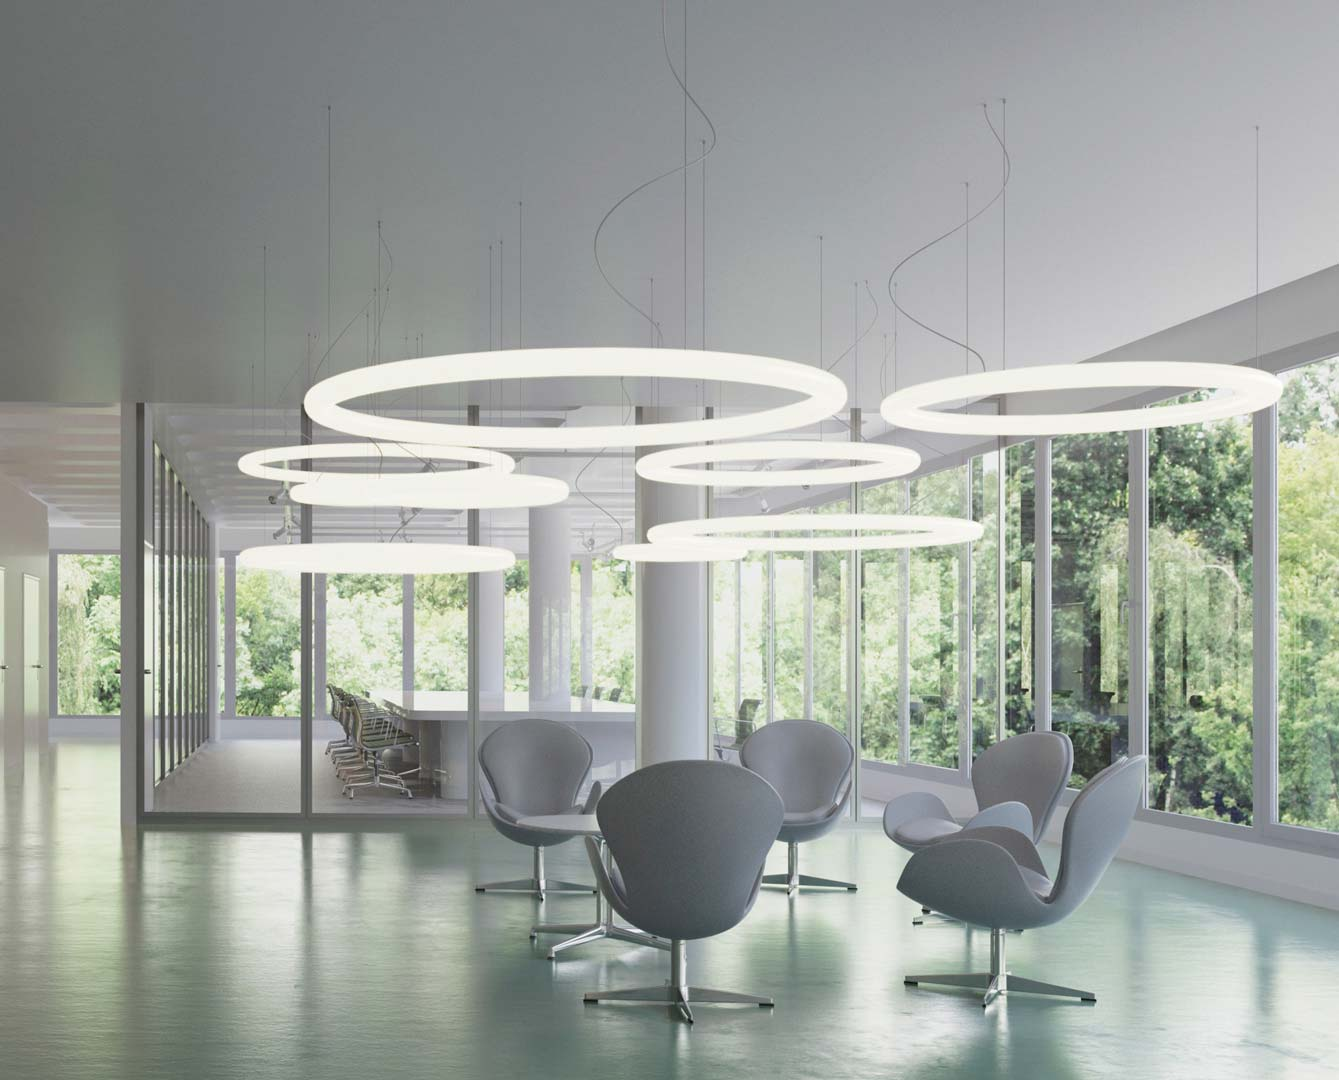 Slide Italian Design Furniture And Lighting For Indoor And Outdoor